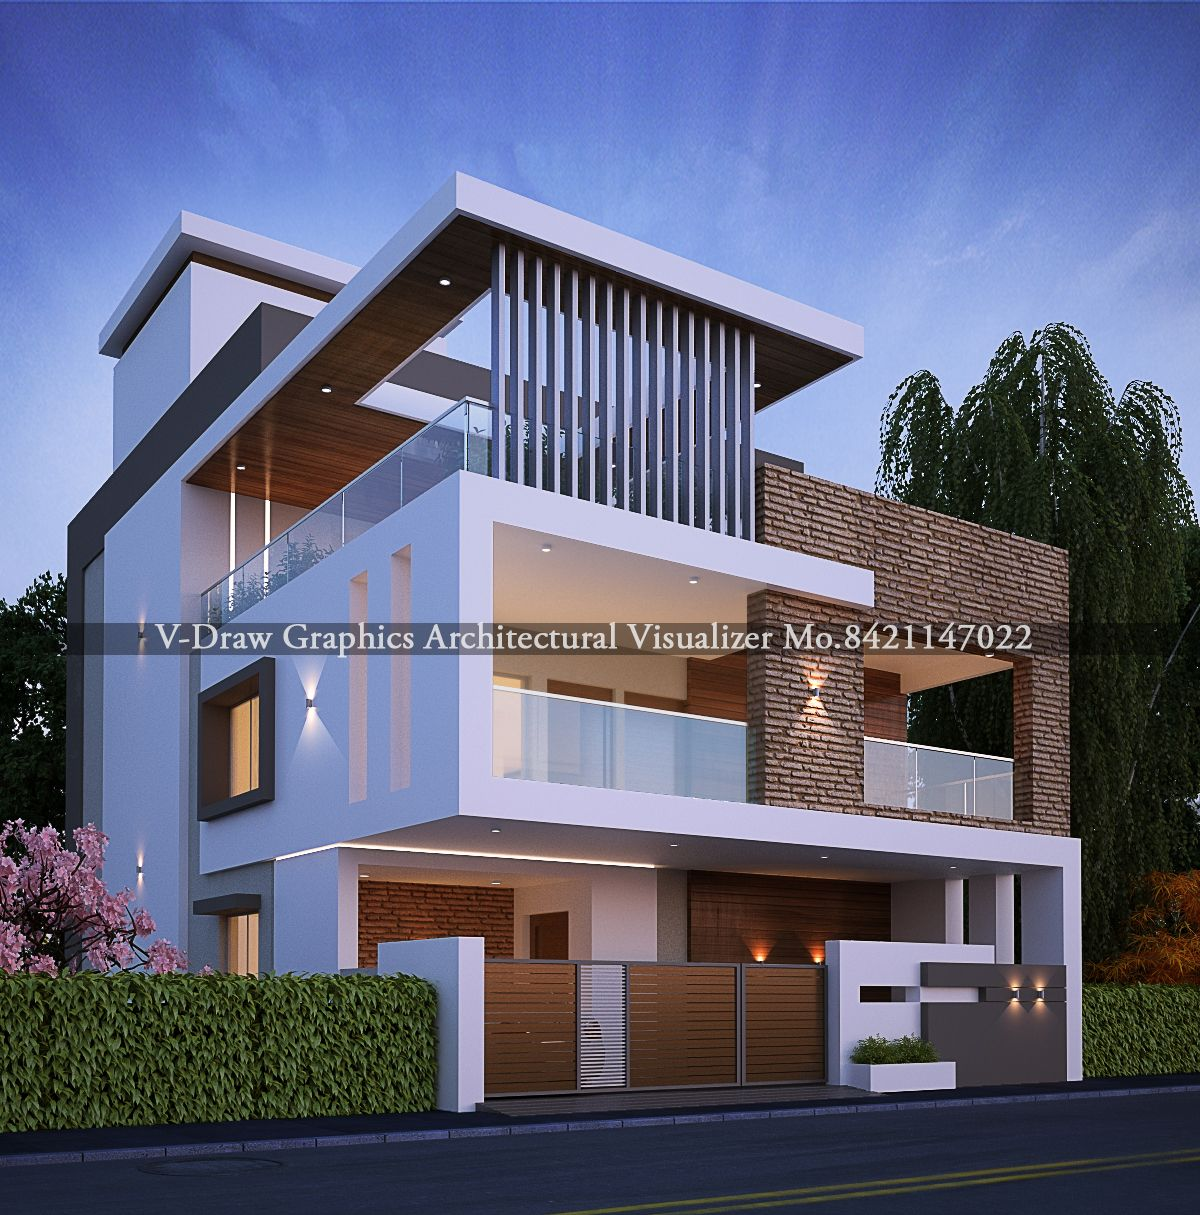 Modern House Design In Ur Thought Duplex House Design House Design Photos Bungalow House Design